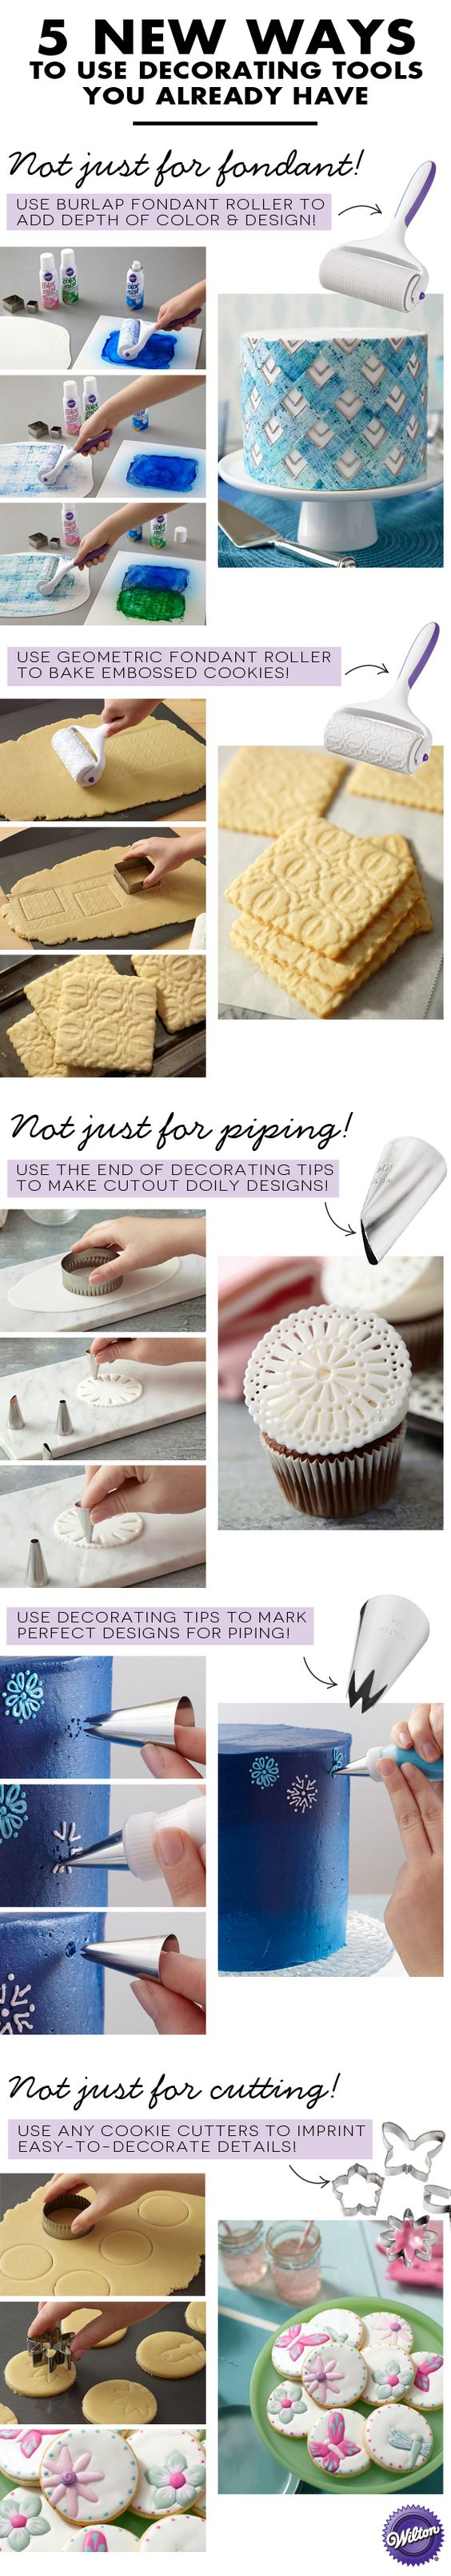 4 new ways to use a handful of everyday decorating tools that you probably already own! These new techniques give some of our favorite and most frequently used decorating tools even more use. Take a look at these DIY cake decorating hacks for fresh inspiration and new ideas on how to use the decorating tip, cookie cutter and fondant roller.